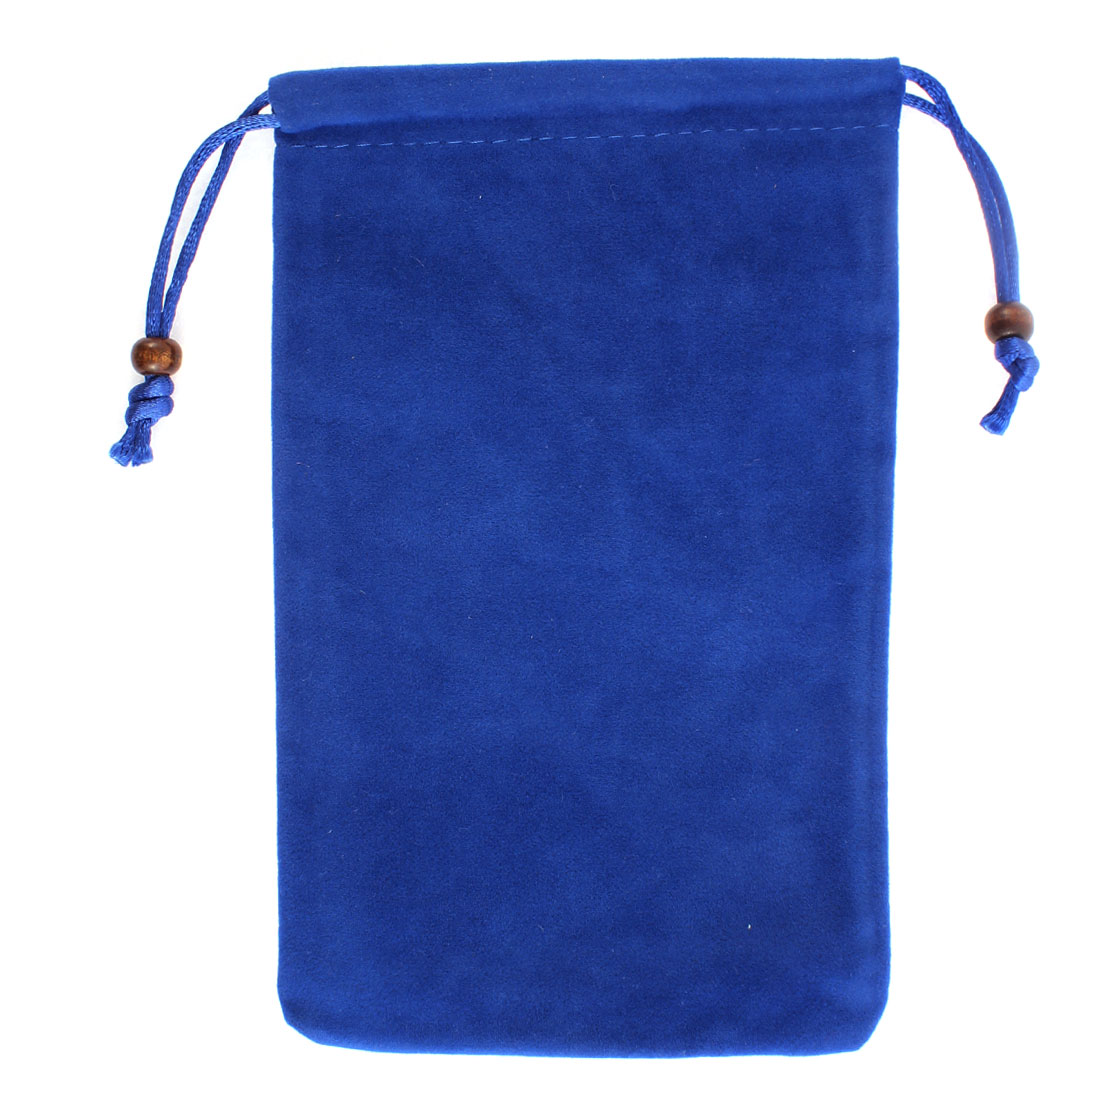 Velvet Drawstring Closure Cell Phone Pouch Holder Bag Royal Blue 18x11.5cm